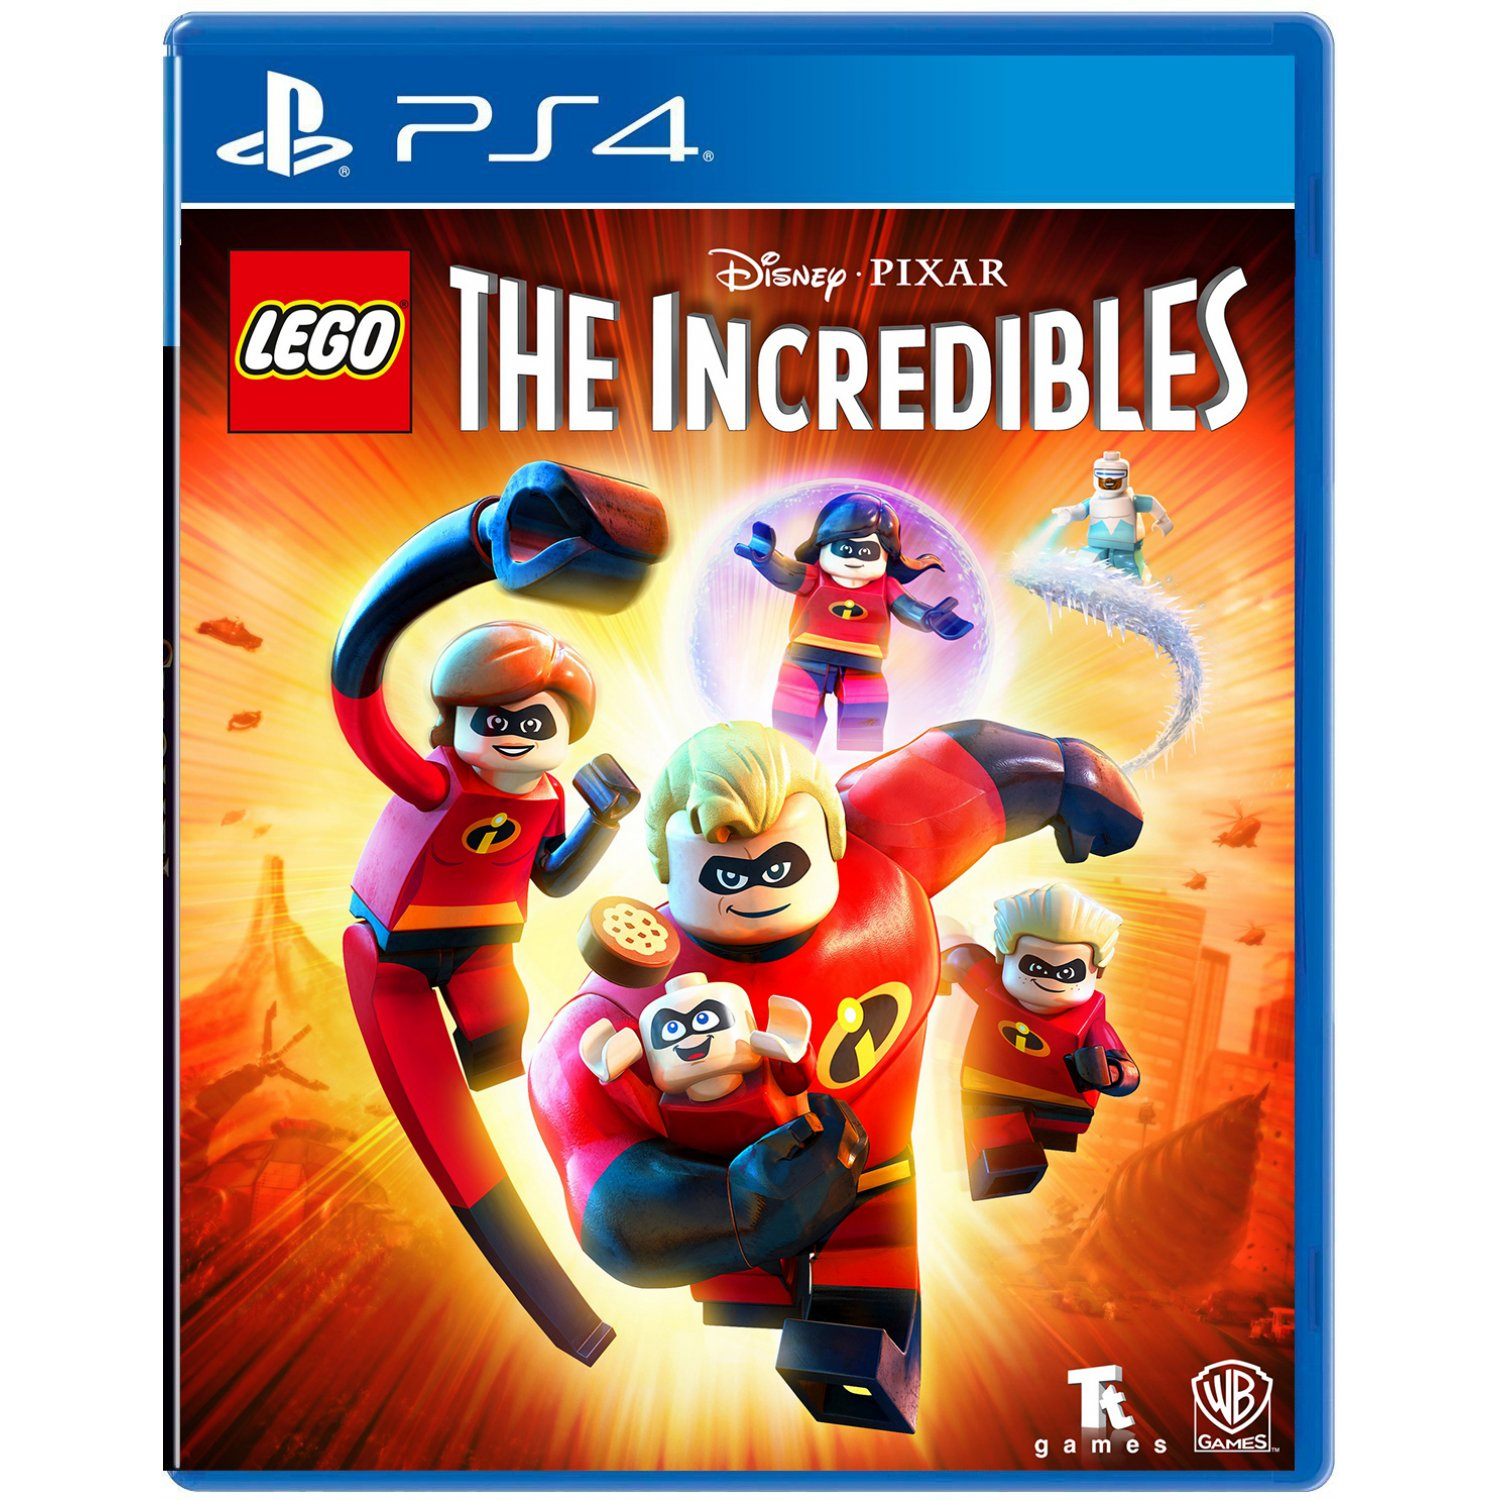 PS4: LEGO THE INCREDIBLES (R3)